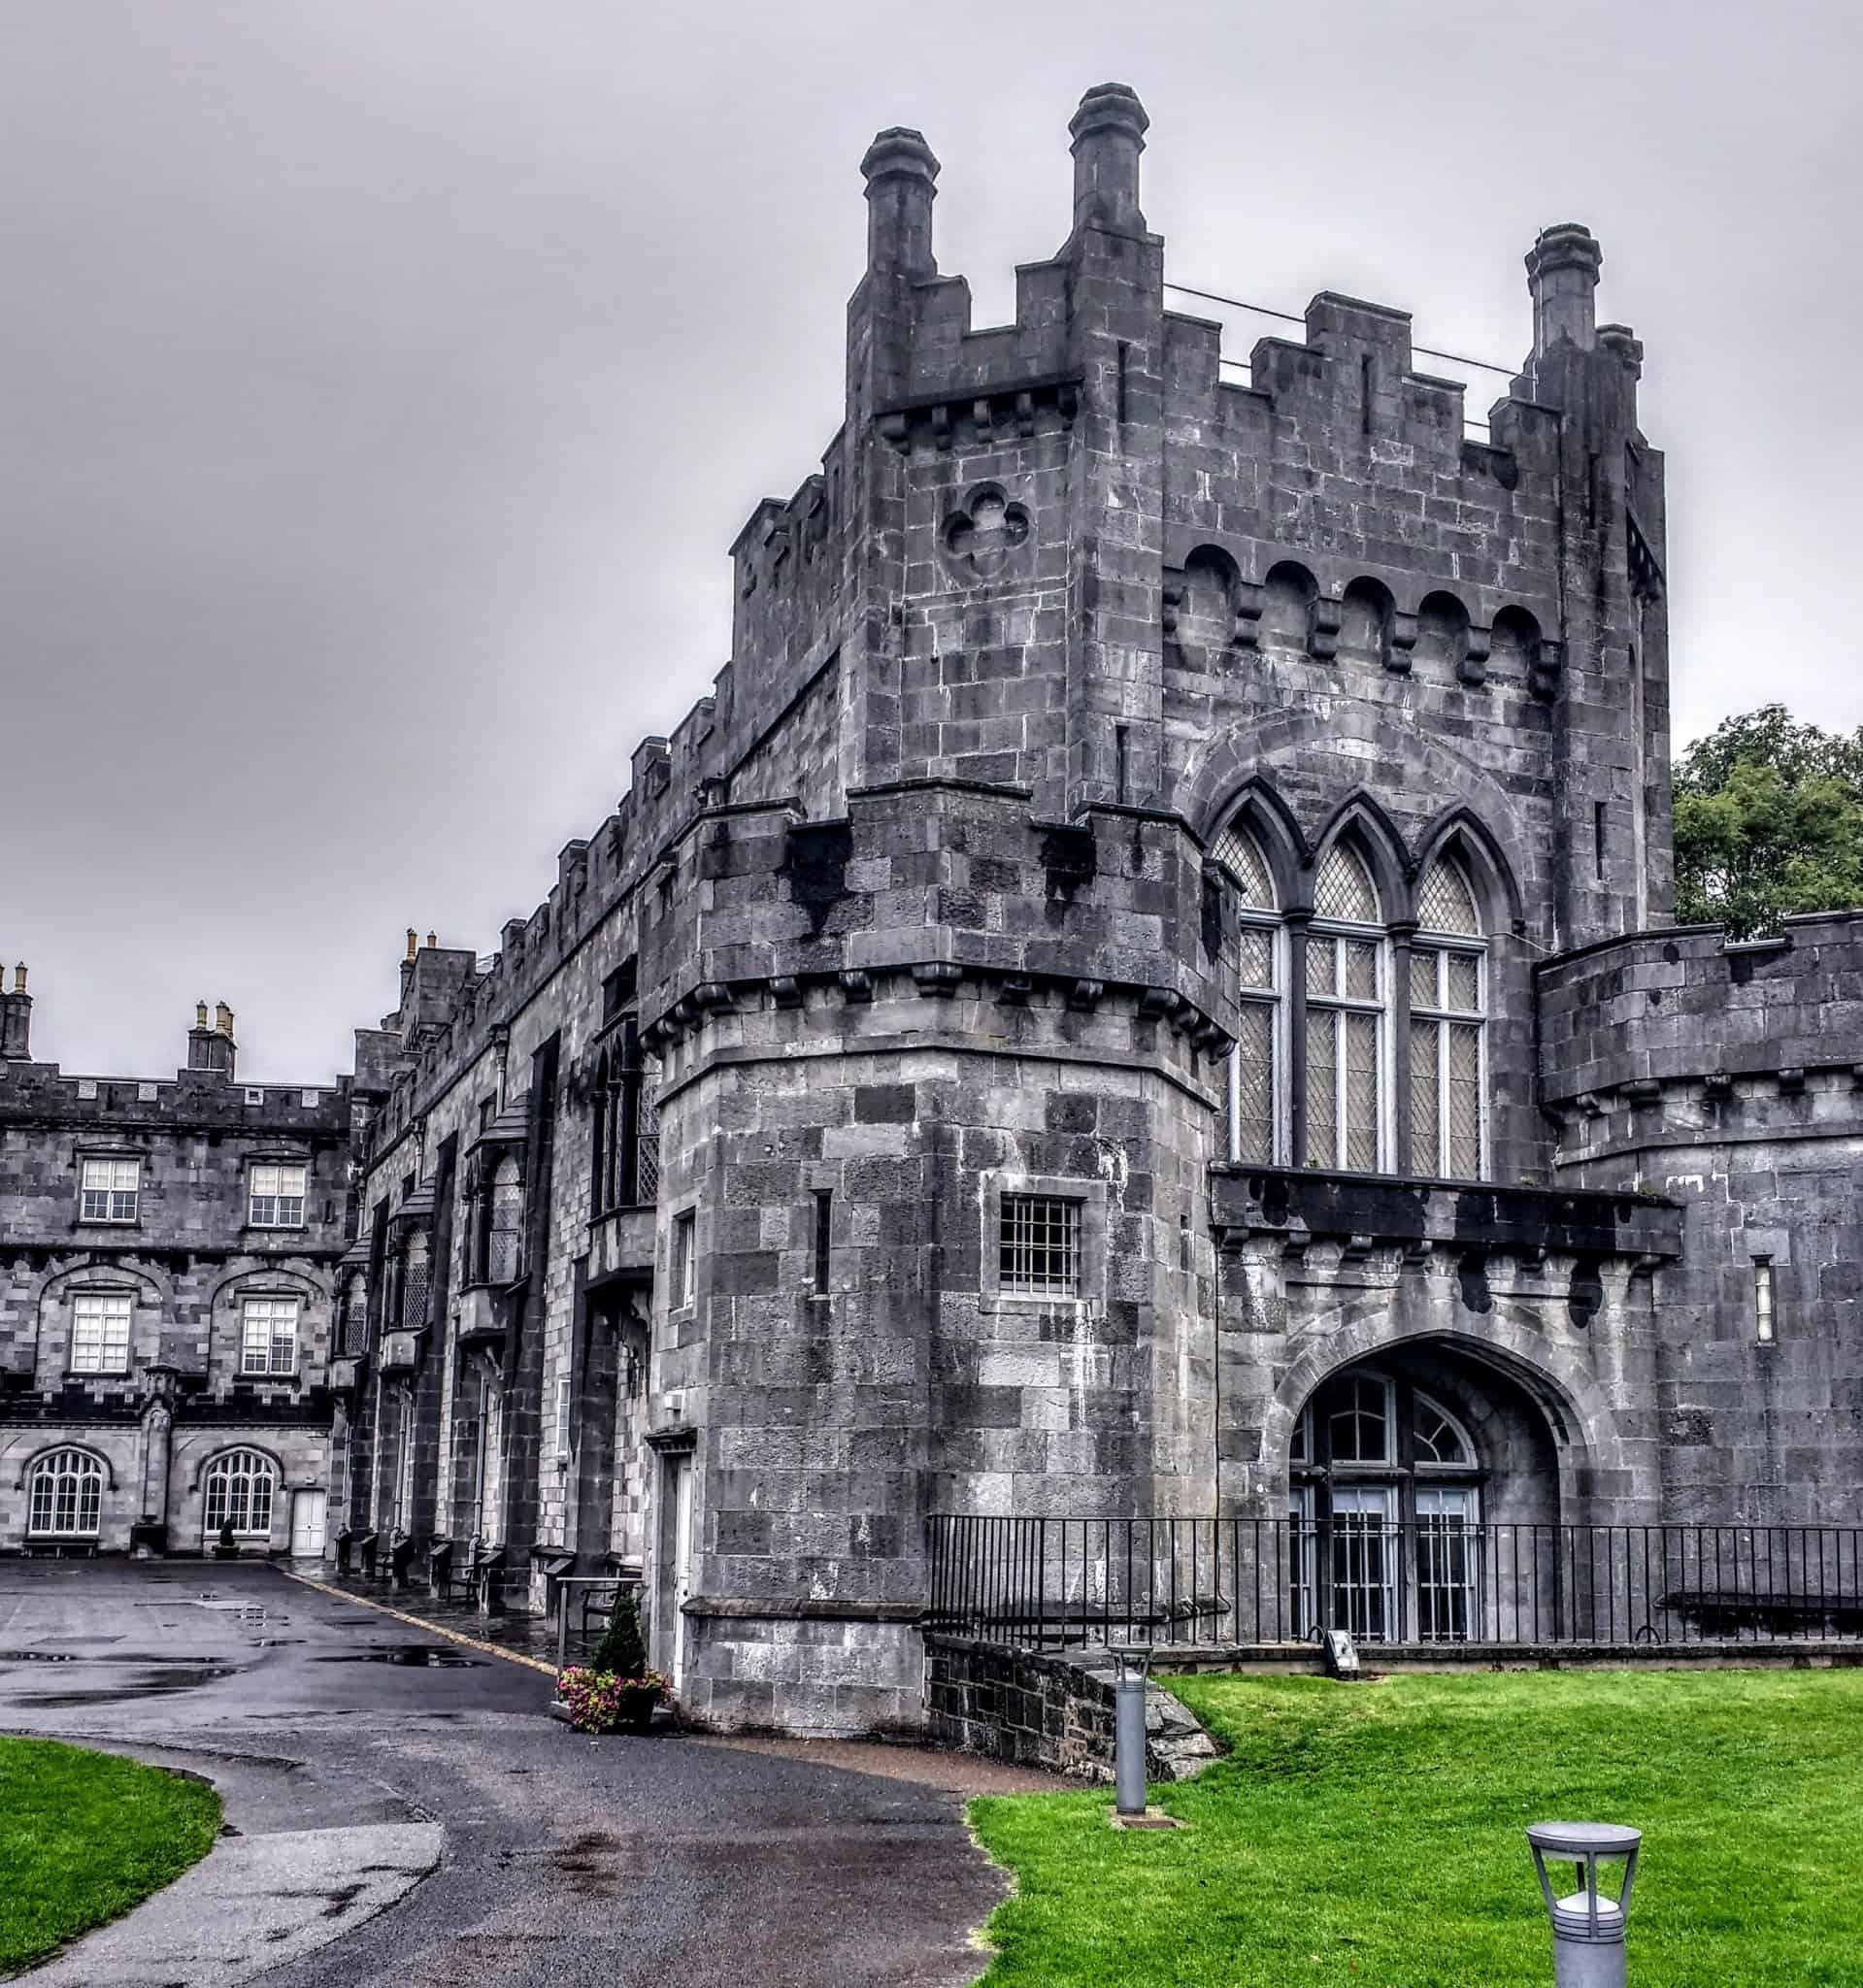 Kilkenny Castle Ireland one of the world's most beautiful